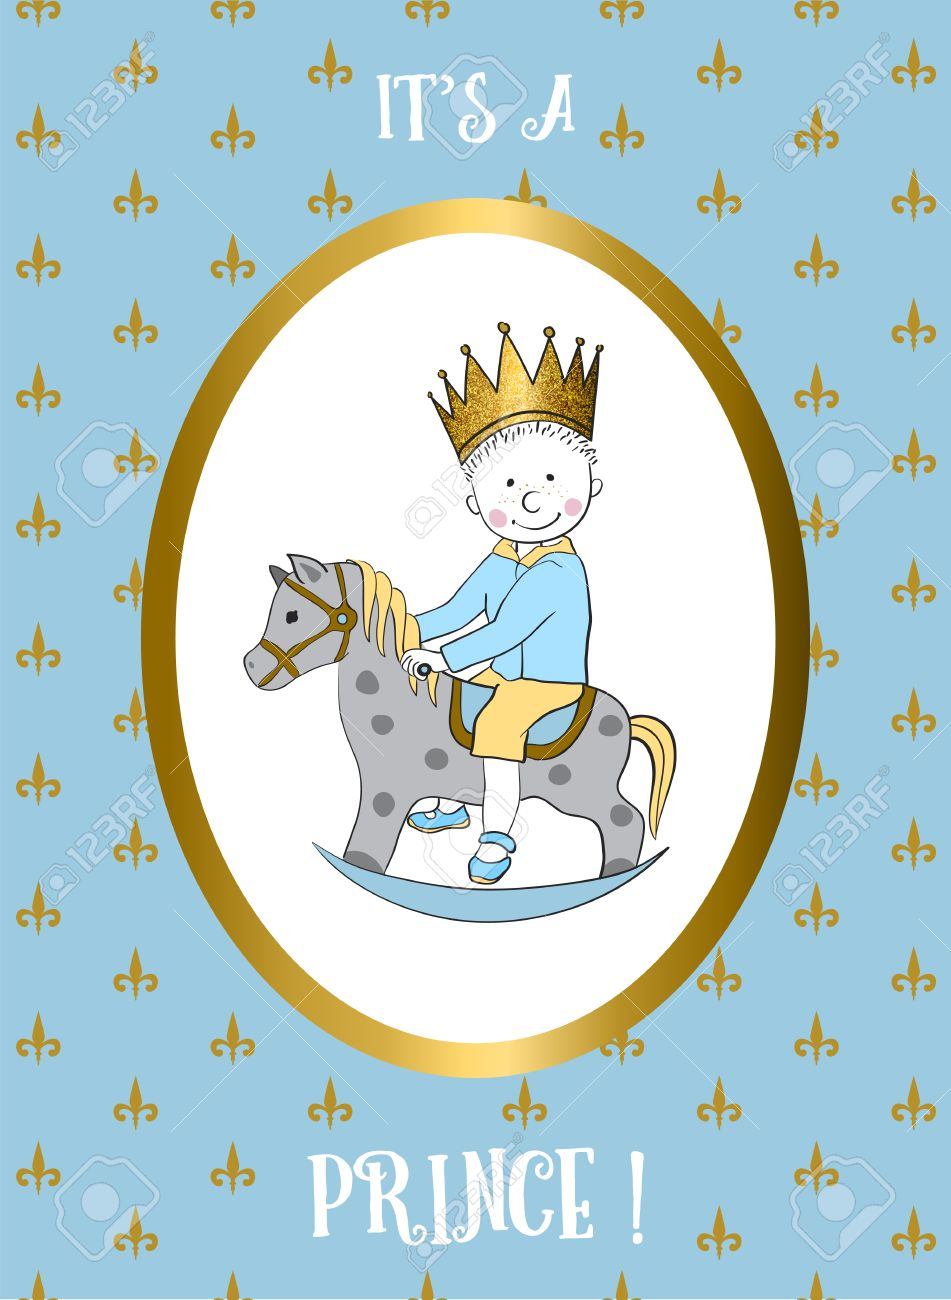 Its A Boy Card With Small Prince Riding Rocking Horse Baby Shower